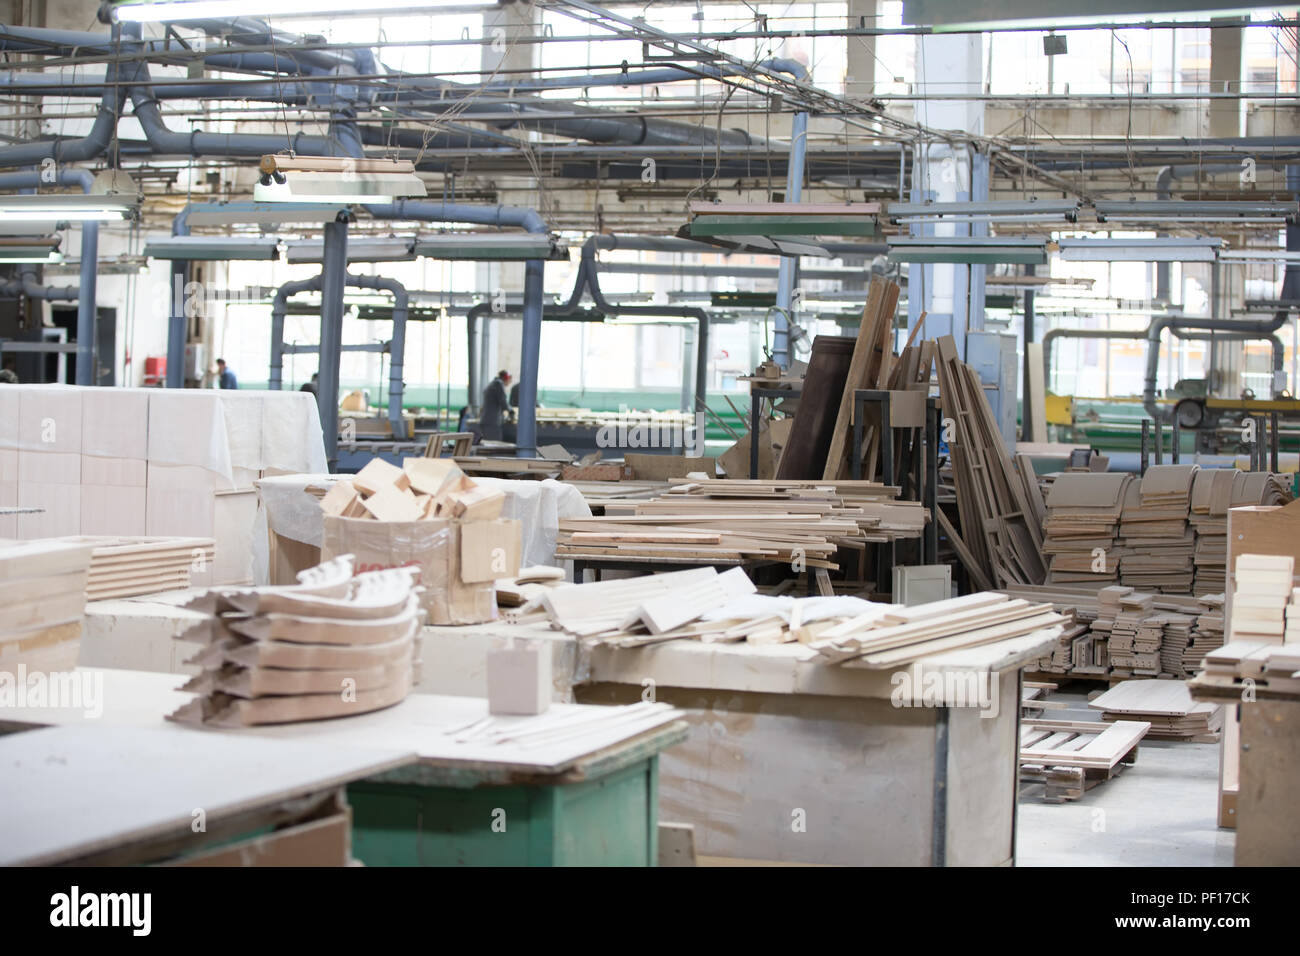 Woodworking Industry Workshop On Processing Of Dreshes